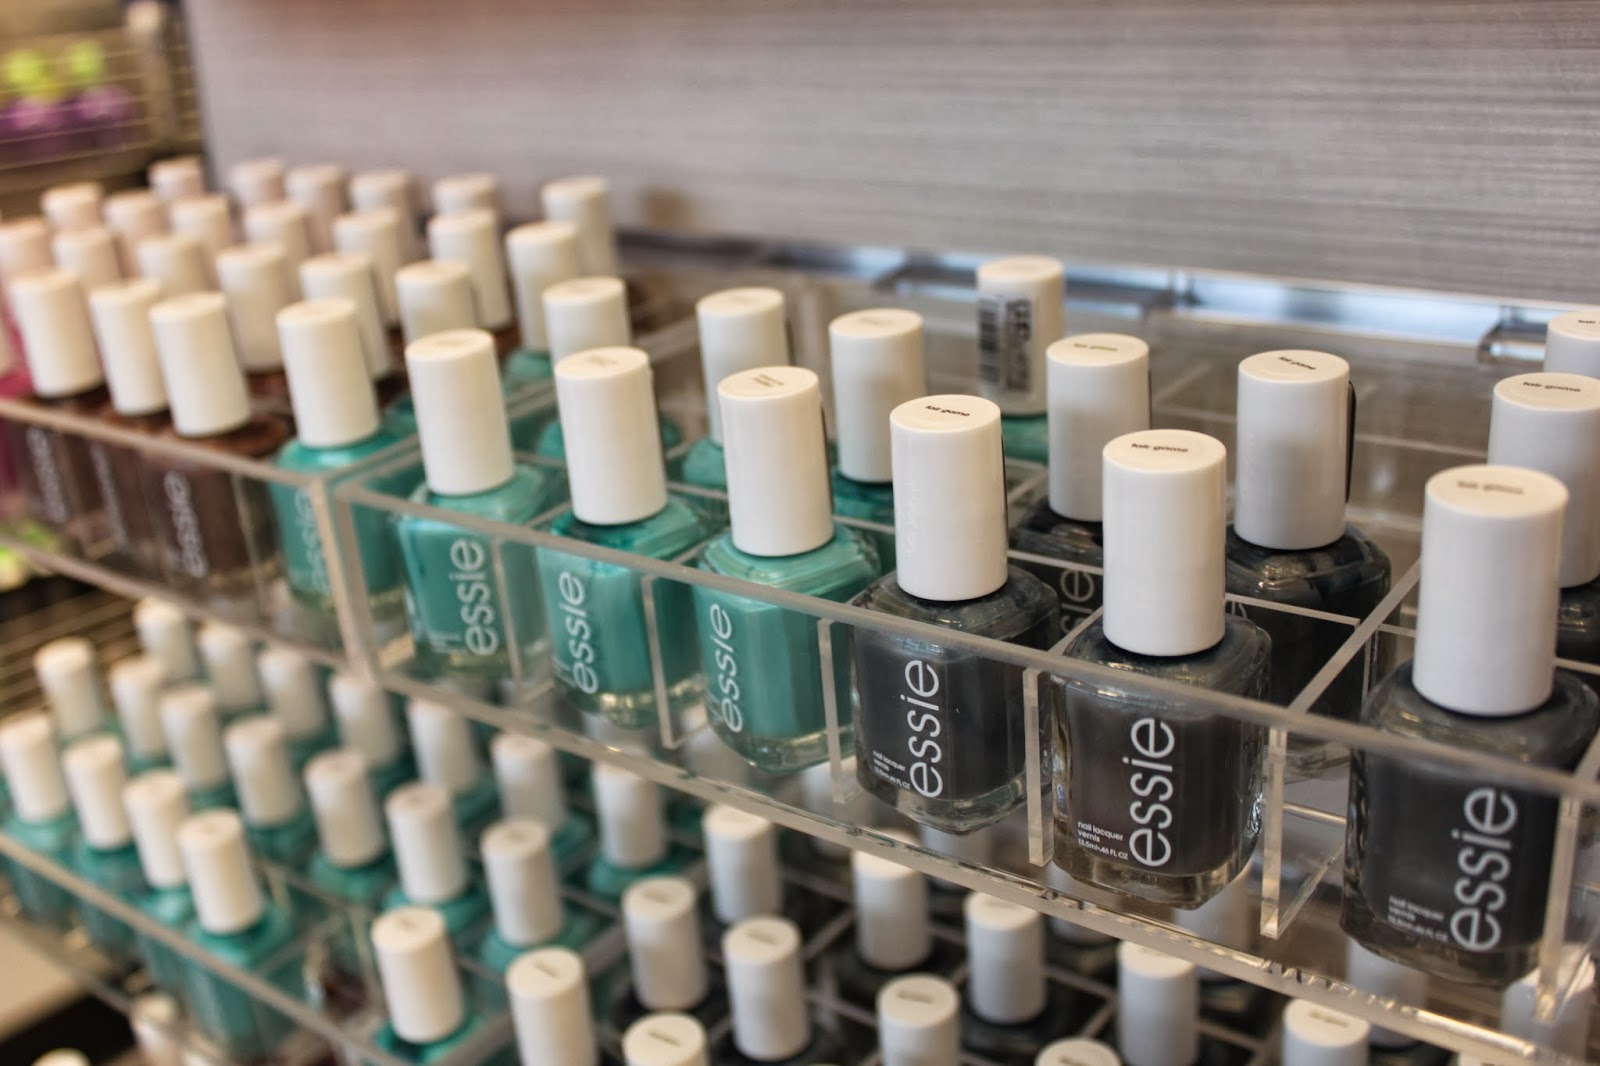 Essie polishes are my favorite, and they had lots of great colors for ...